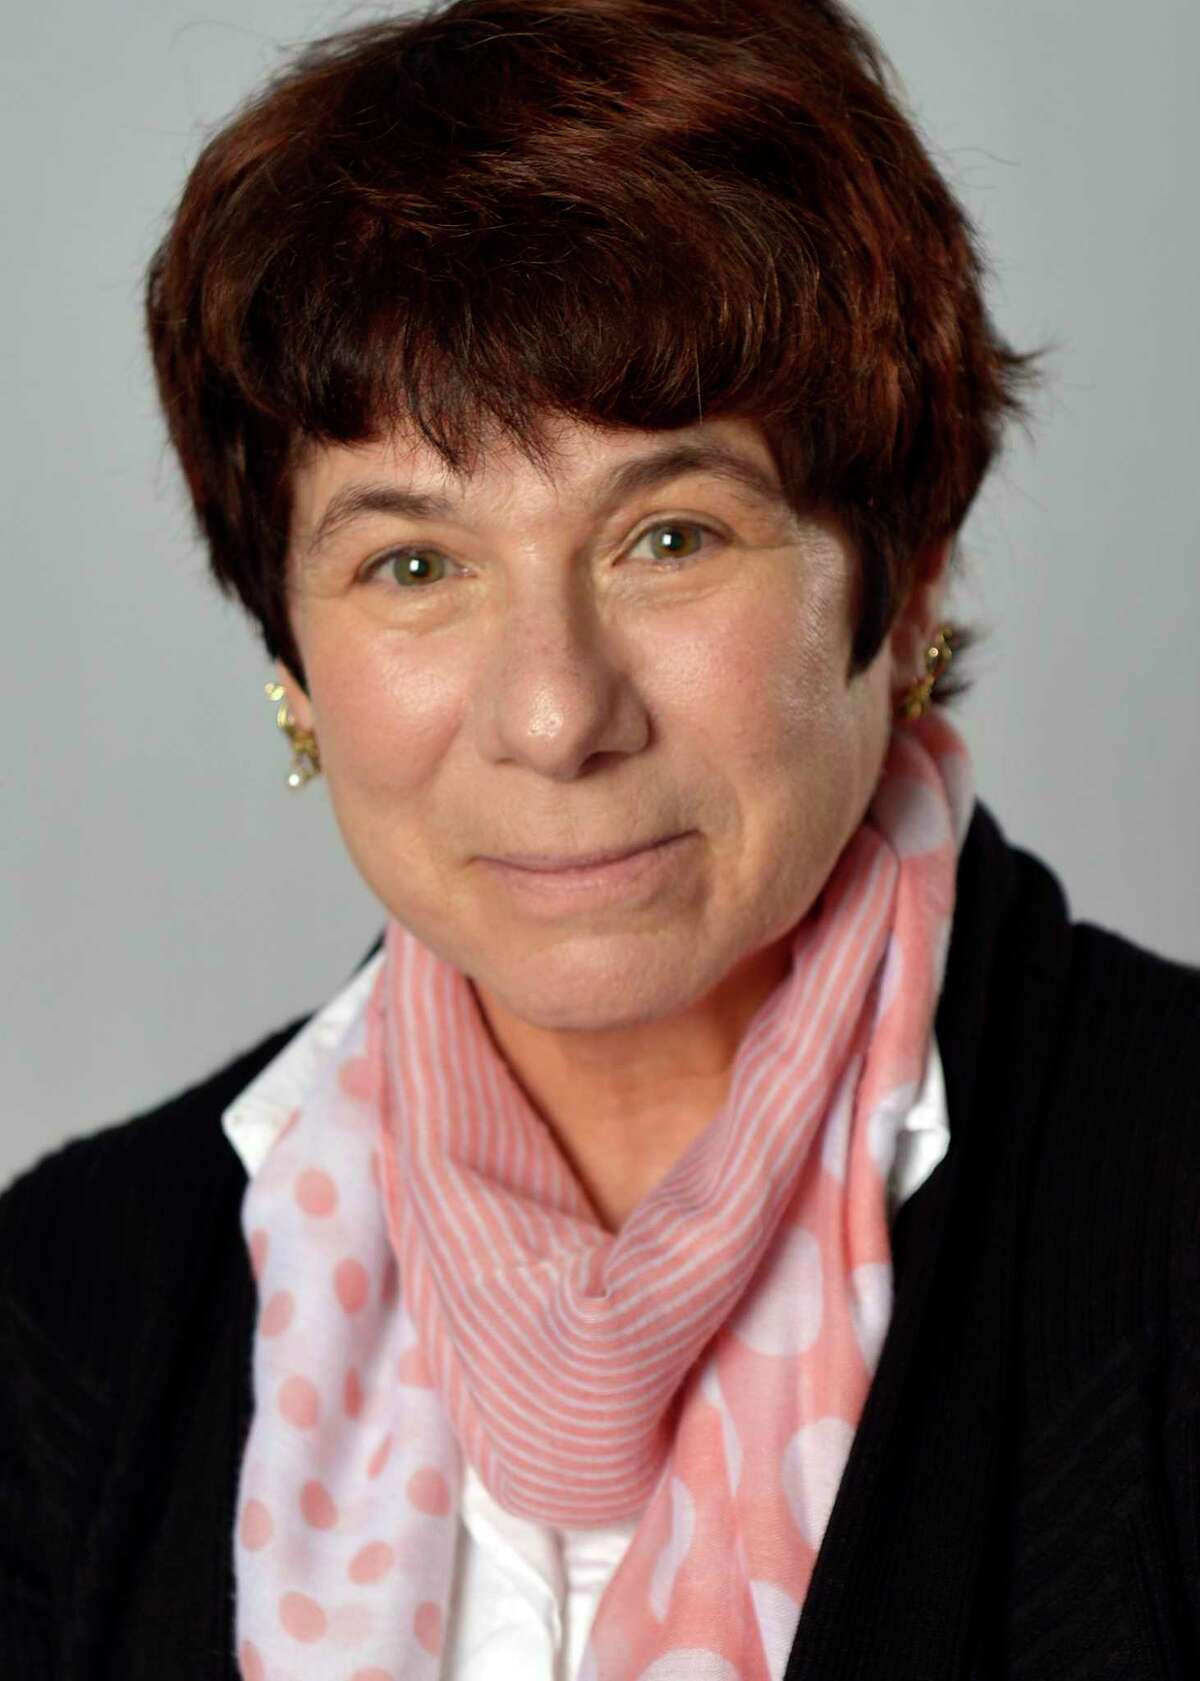 Dr. Leslie Lindenauer is a history professor at Western Connecticut State University.